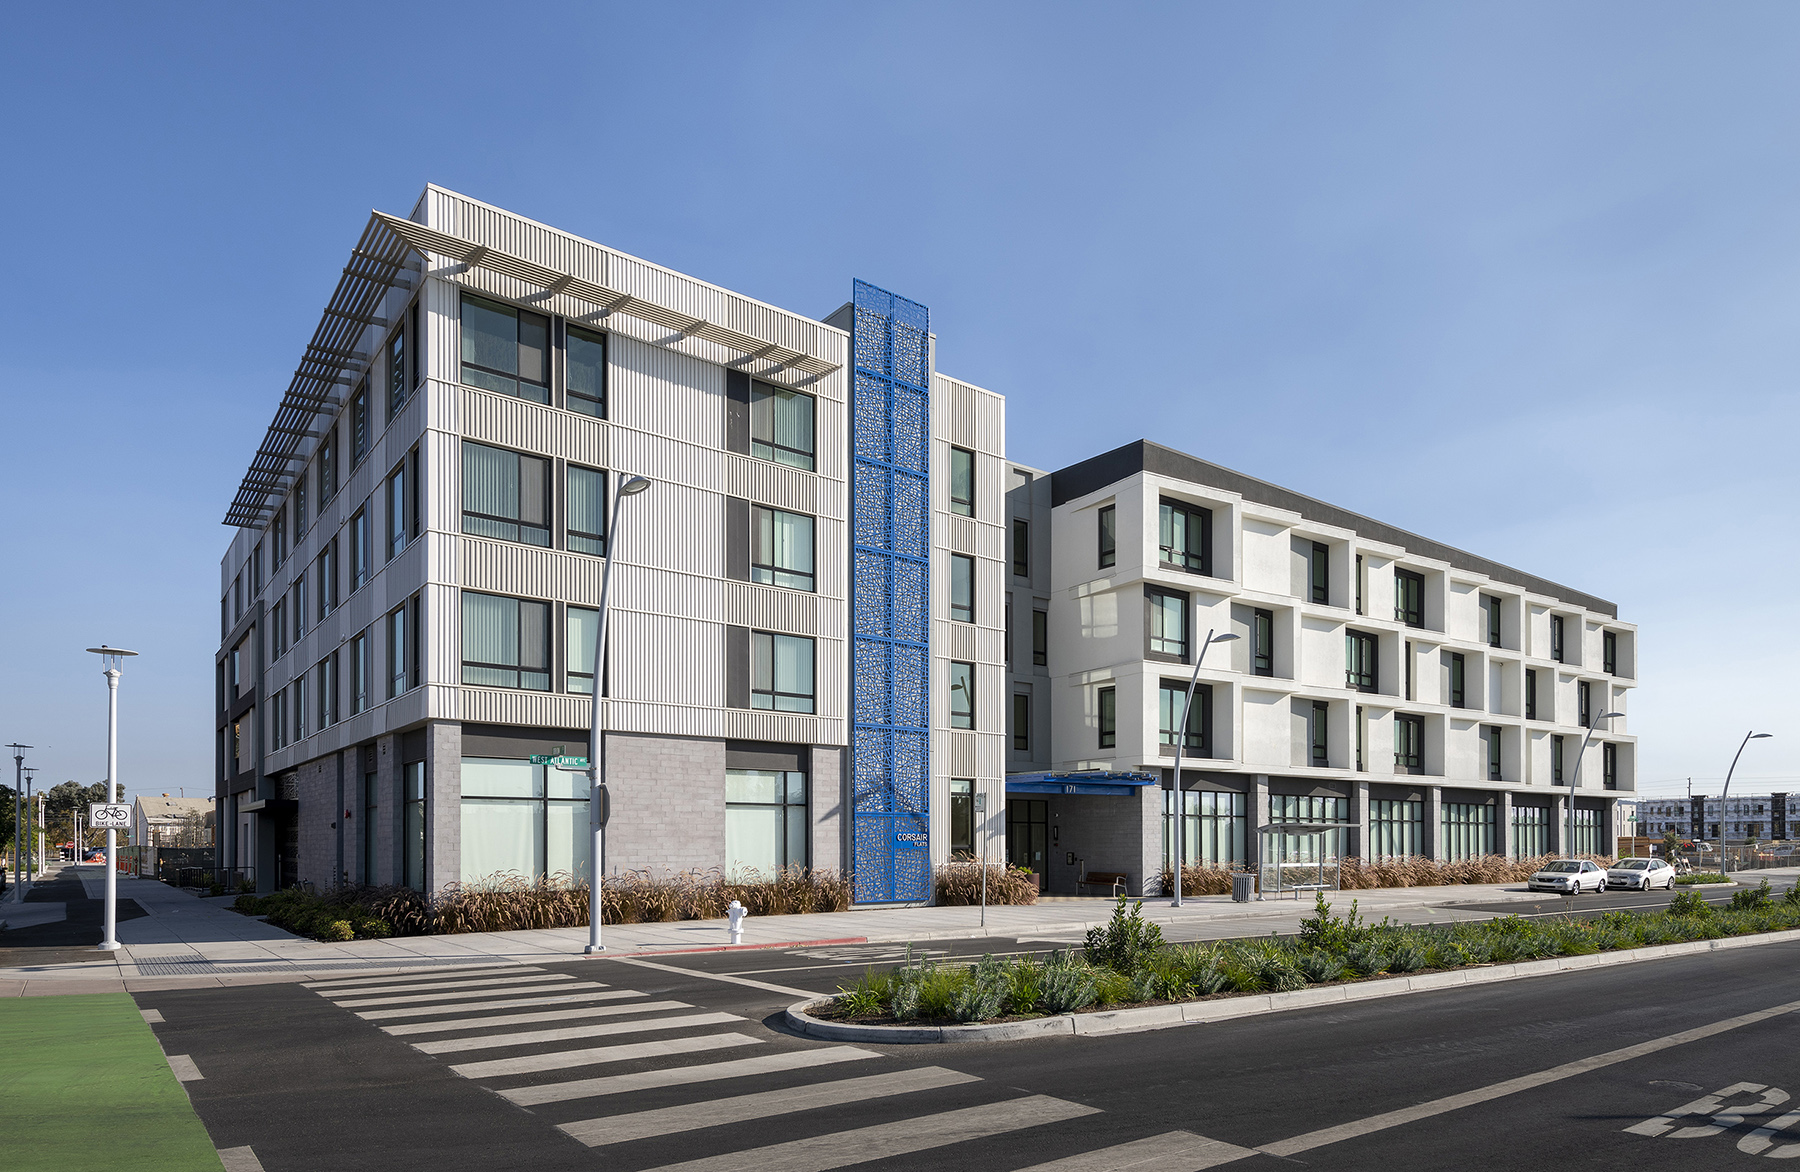 KTGY-Designed New Affordable Housing Community for Seniors Welcomes Residents at Alameda Point 6